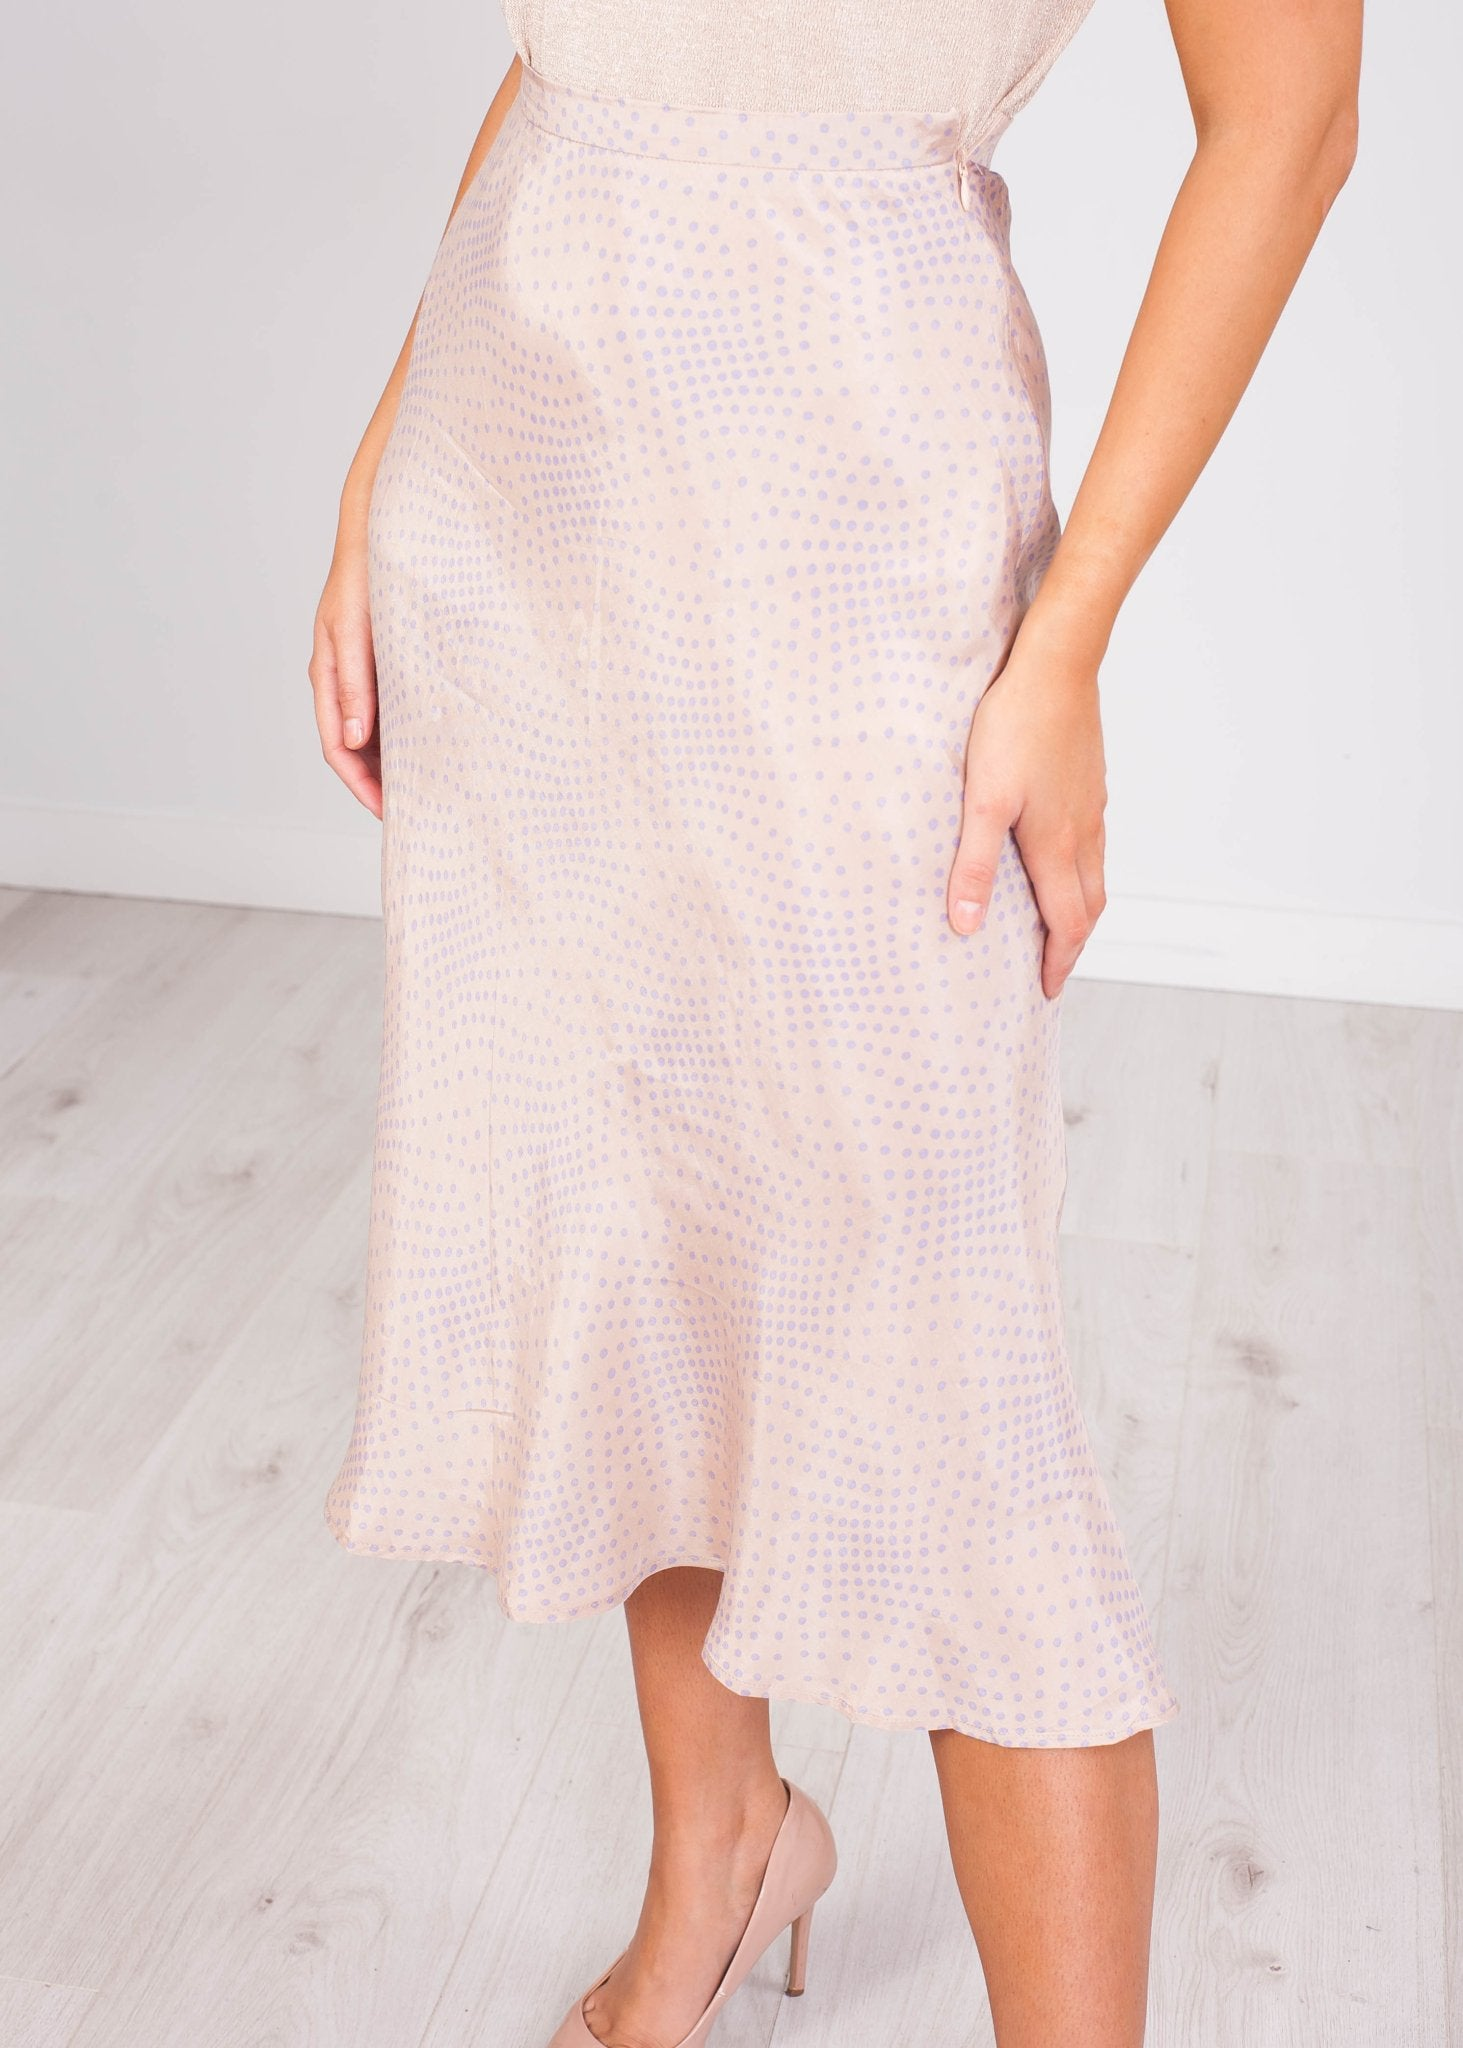 Emilia Polka Dot Beige Slip Skirt - The Walk in Wardrobe